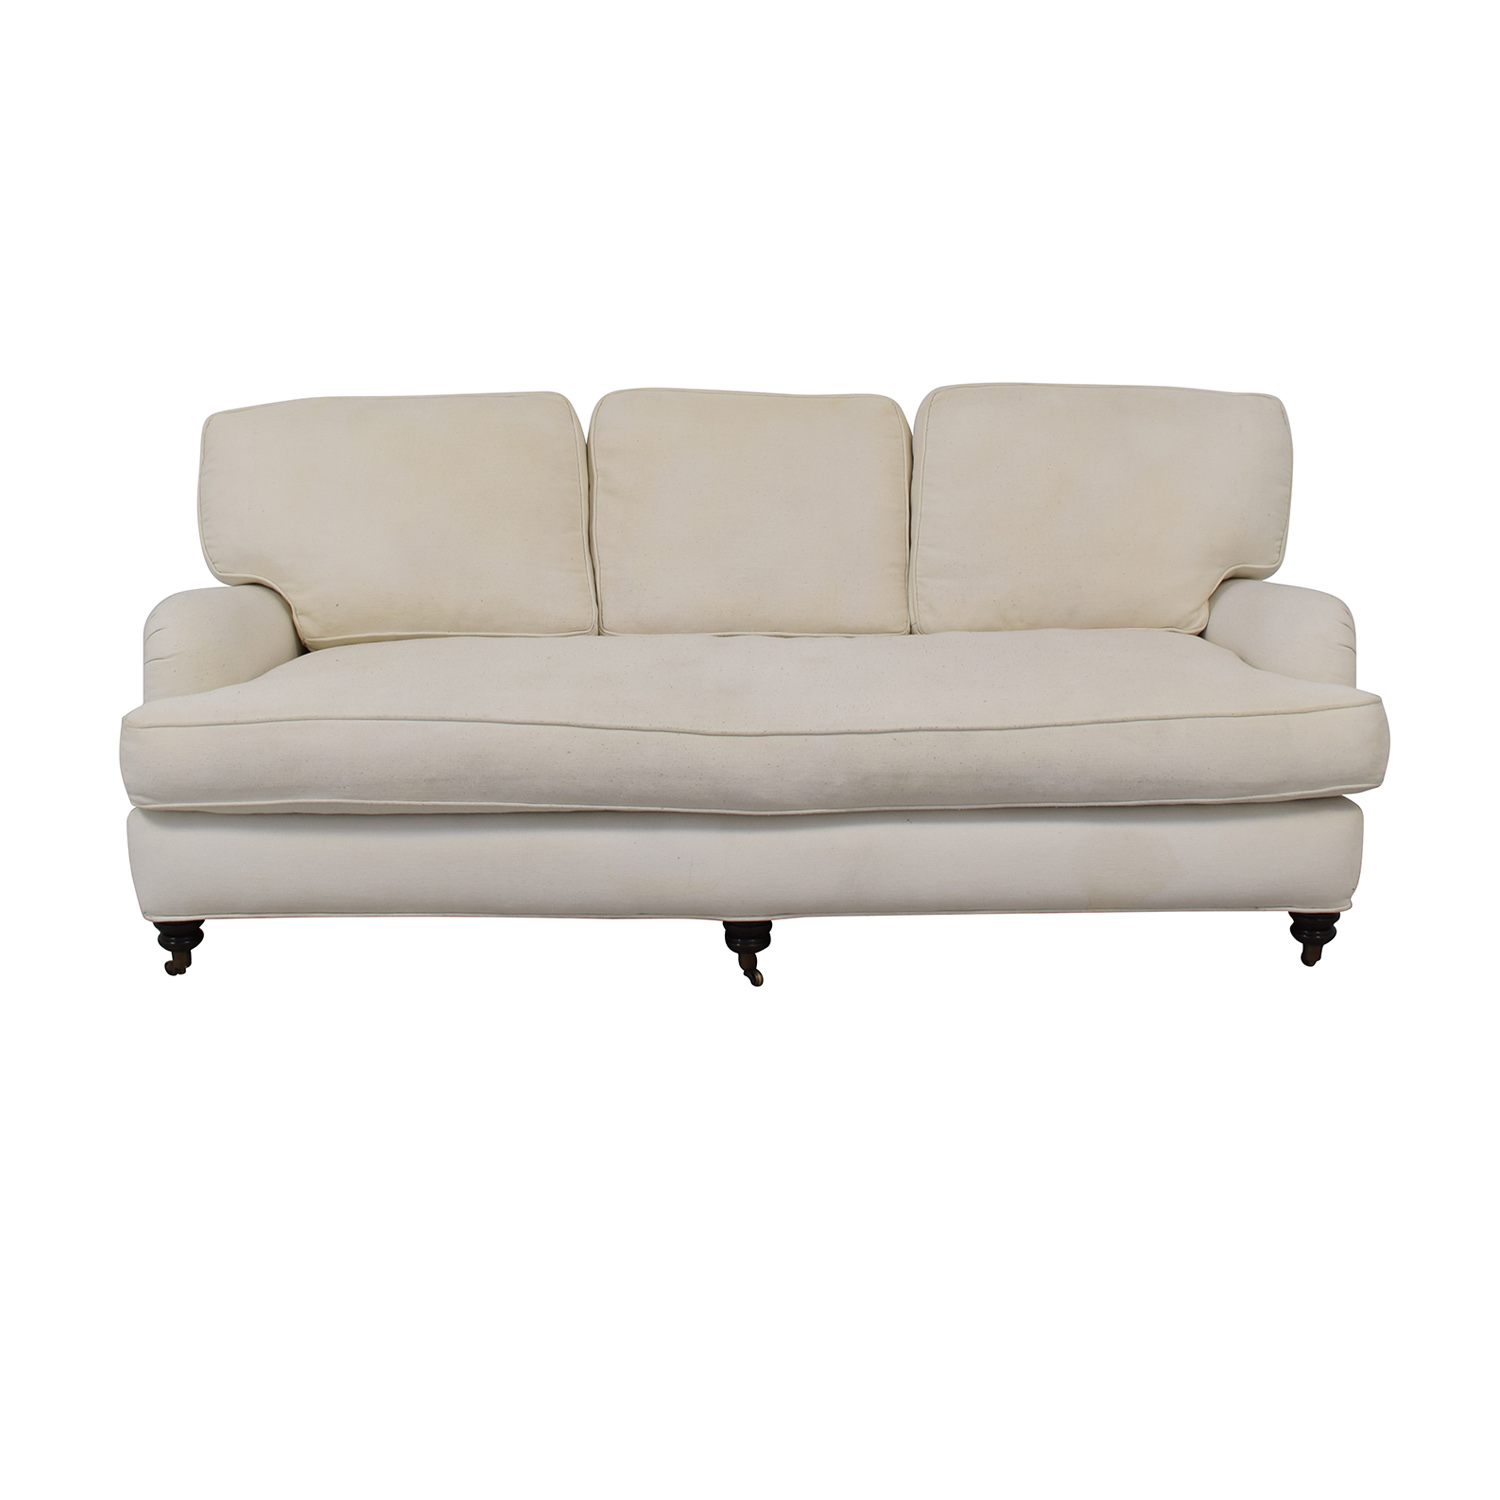 buy Pottery Barn Linen Upholstered Sofa Pottery Barn